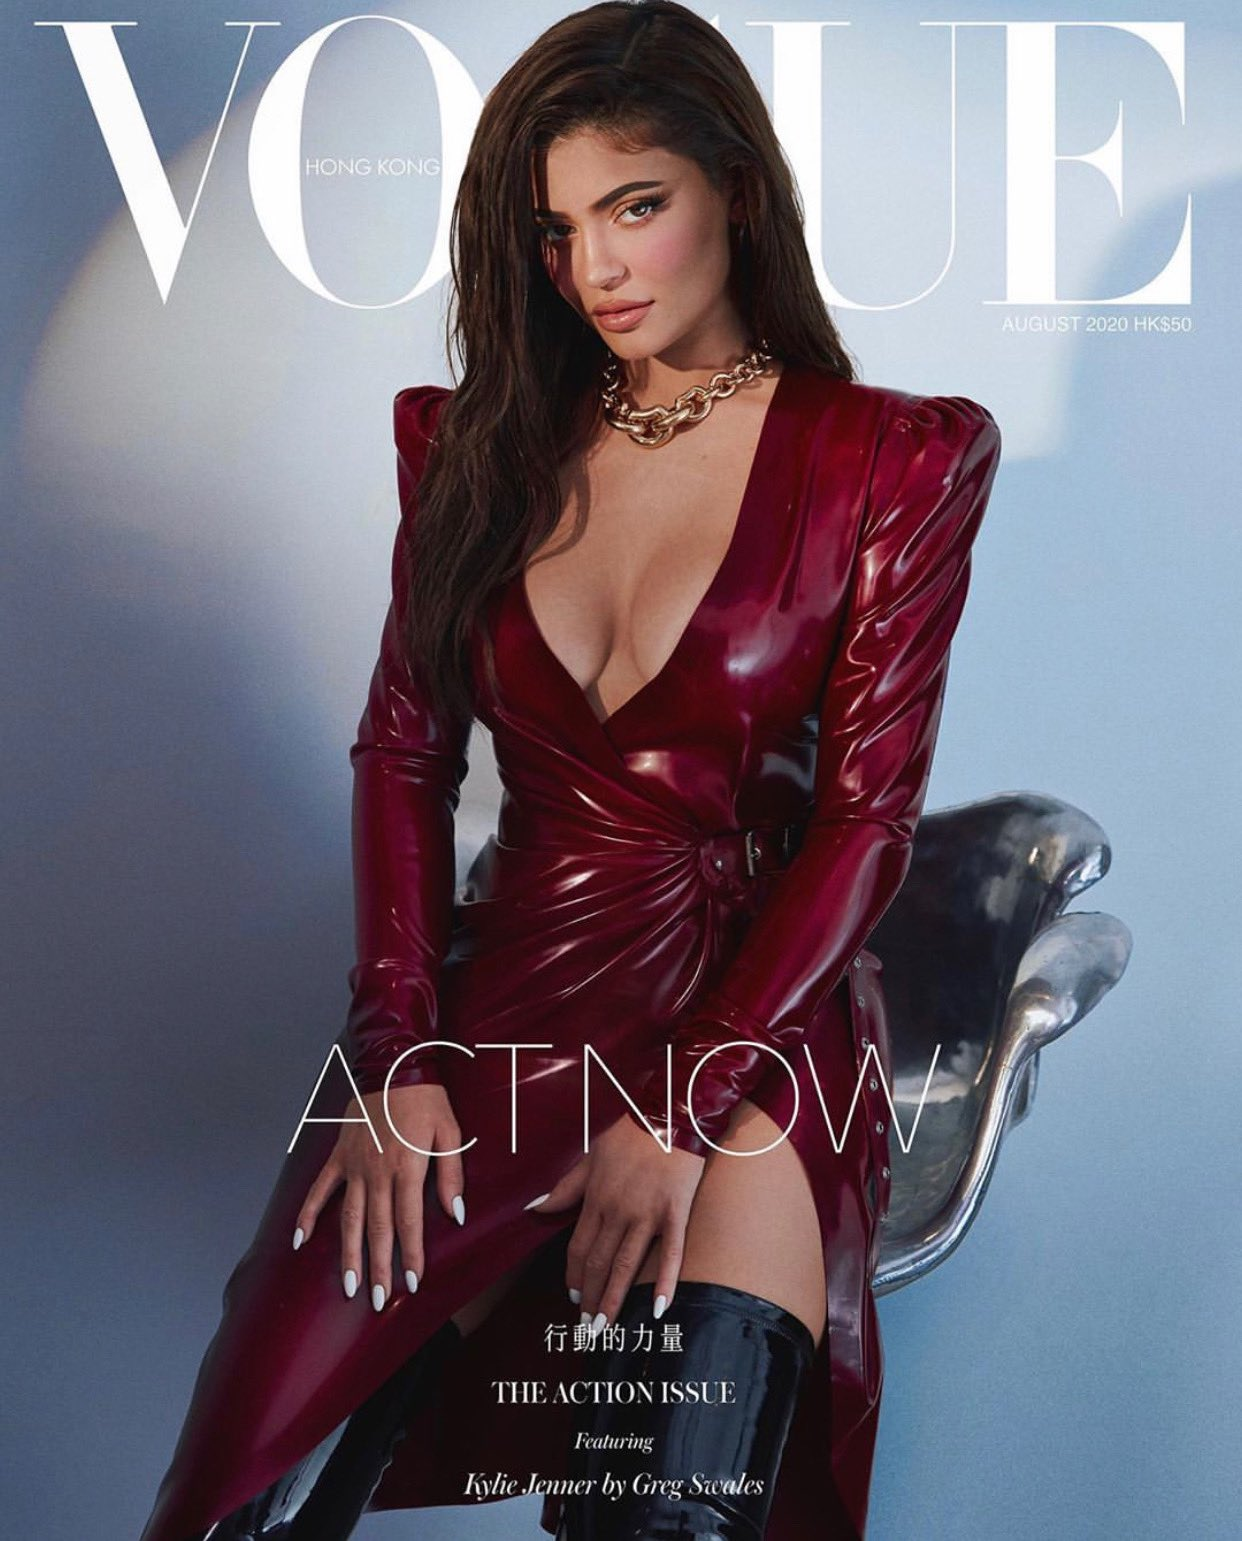 Kylie Jenner Covers The August 2020 Issue Of Vogue Hong Kong